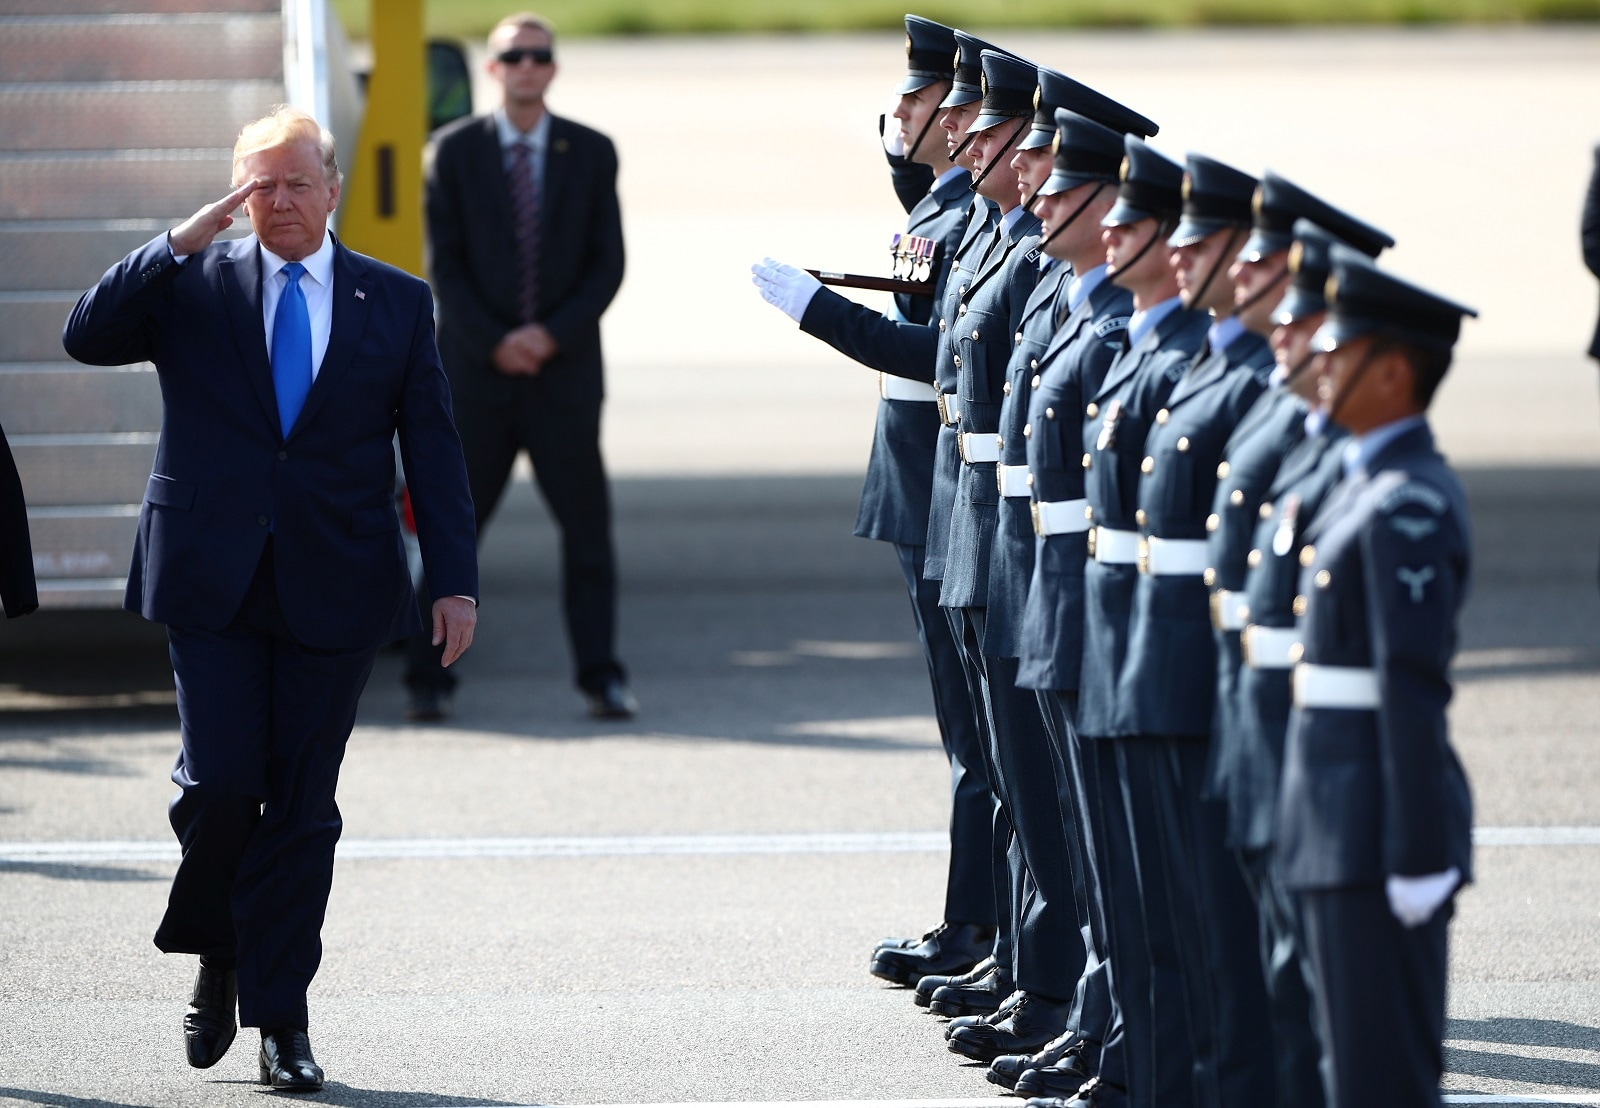 US President Donald Trump arrives for his state visit to Britain, at Stansted Airport near London, Britain, June 3, 2019. REUTERS/Hannah McKay